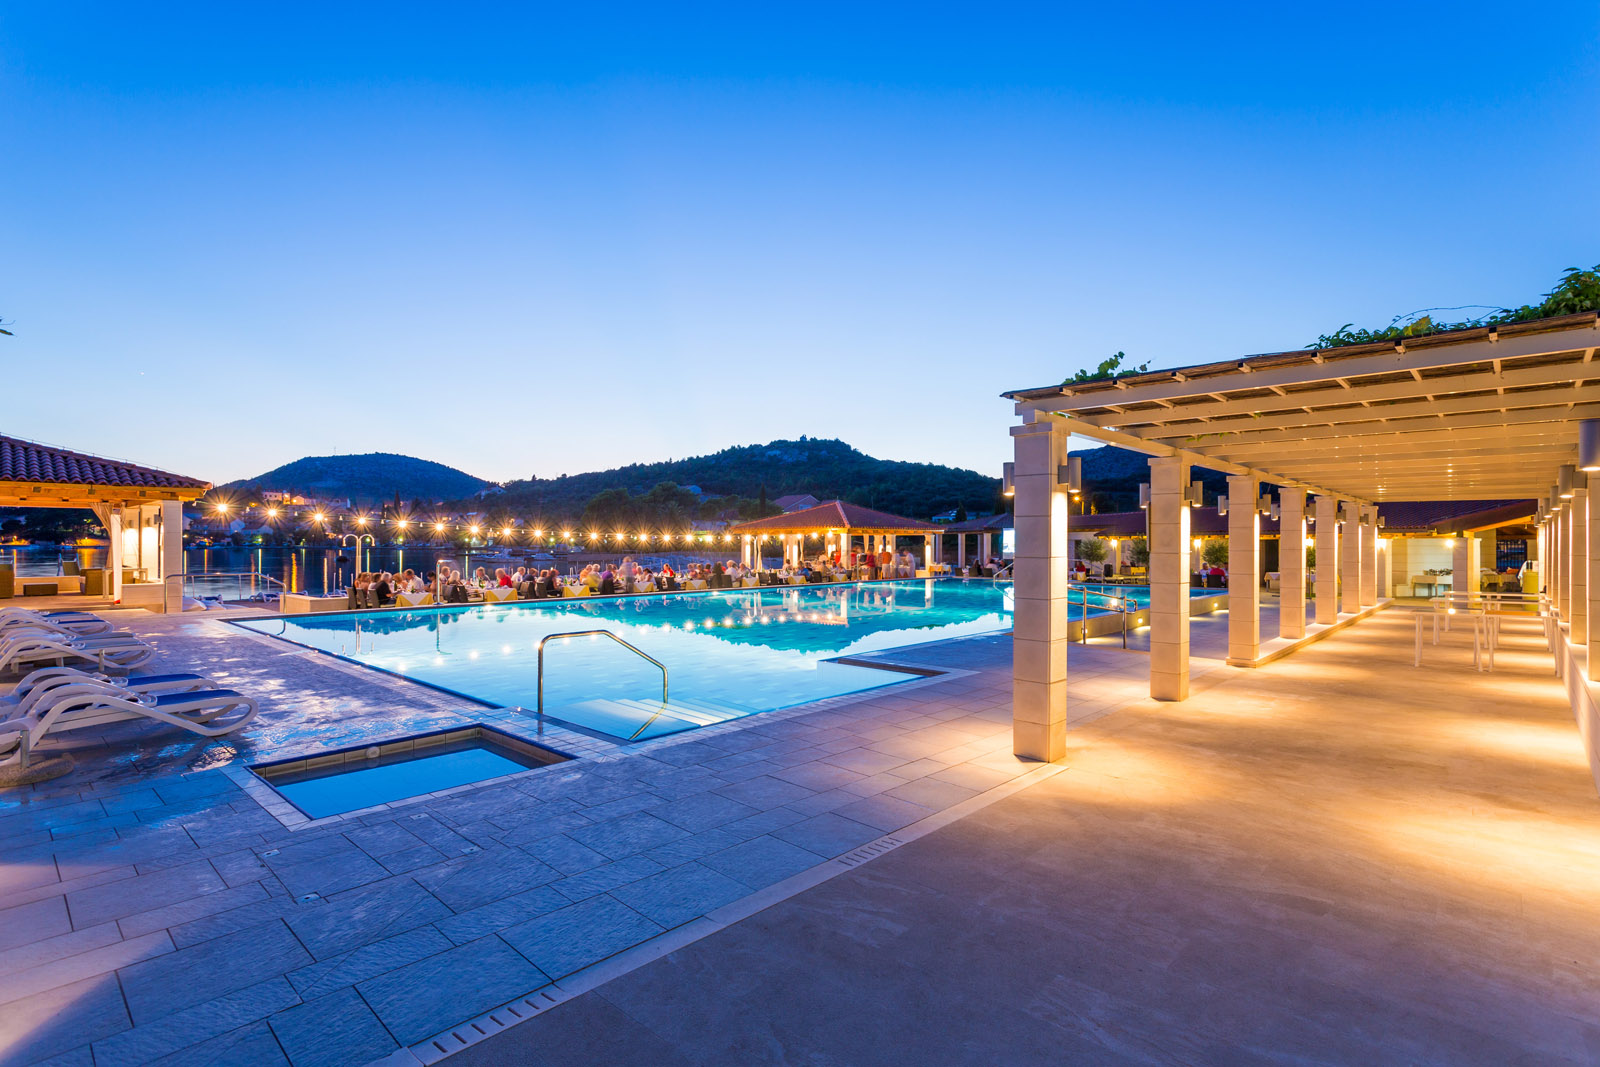 100 Admiral Pools Llc Scottsdale Pool Service Admiral Pools Youtube Buster Crabbe Pools